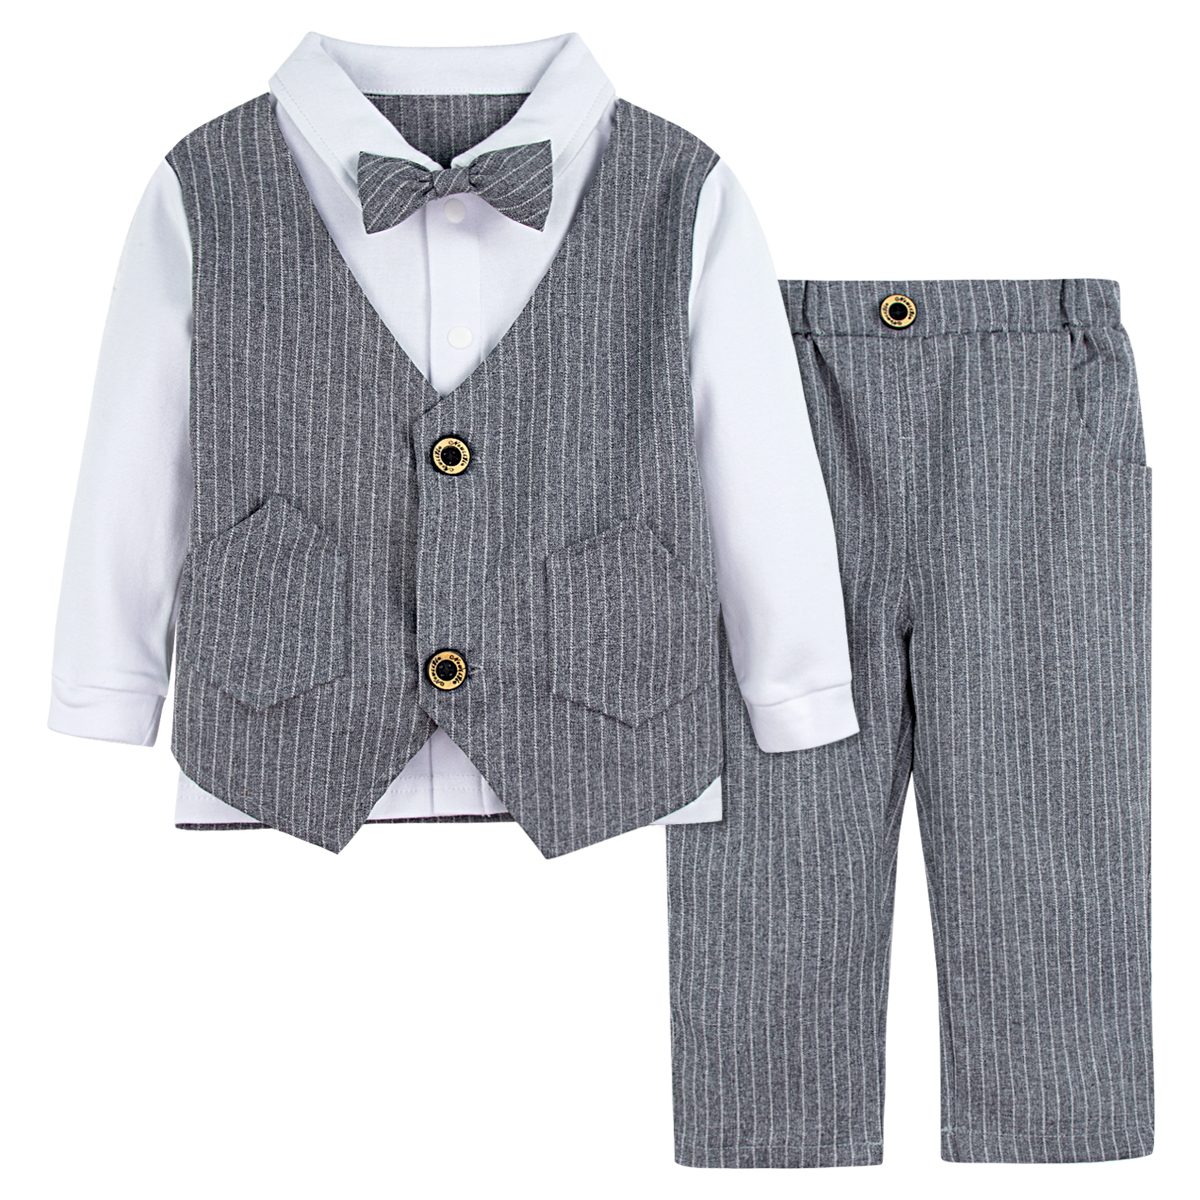 Baby Boys Long Sleeve Tuxedo Infant Gentleman Formal Outfit Toddler Wedding Birthday Party Suit Baptism Clothes Set 2PCS